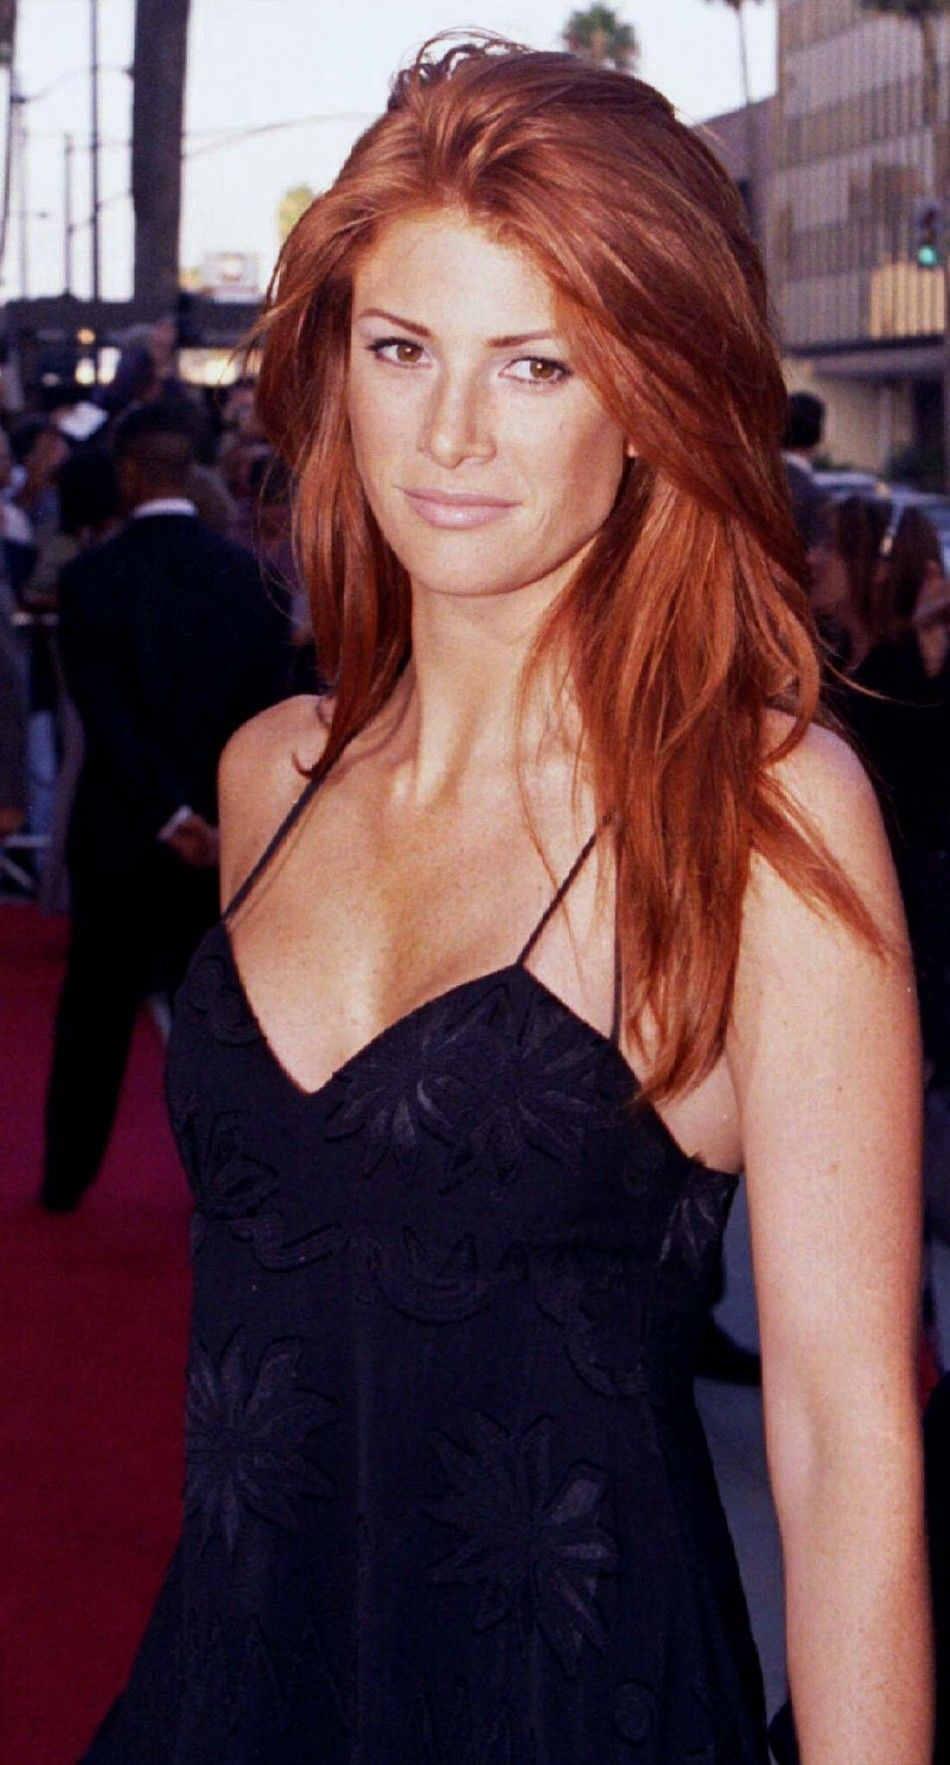 angie everhartangie everhart фото, angie everhart cancer, angie everhart photo gallery, angie everhart movie list, angie everhart, angie everhart wiki, angie everhart instagram, angie everhart joe pesci, angie everhart 2015, angie everhart howard stern, angie everhart sylvester stallone, angie everhart movie